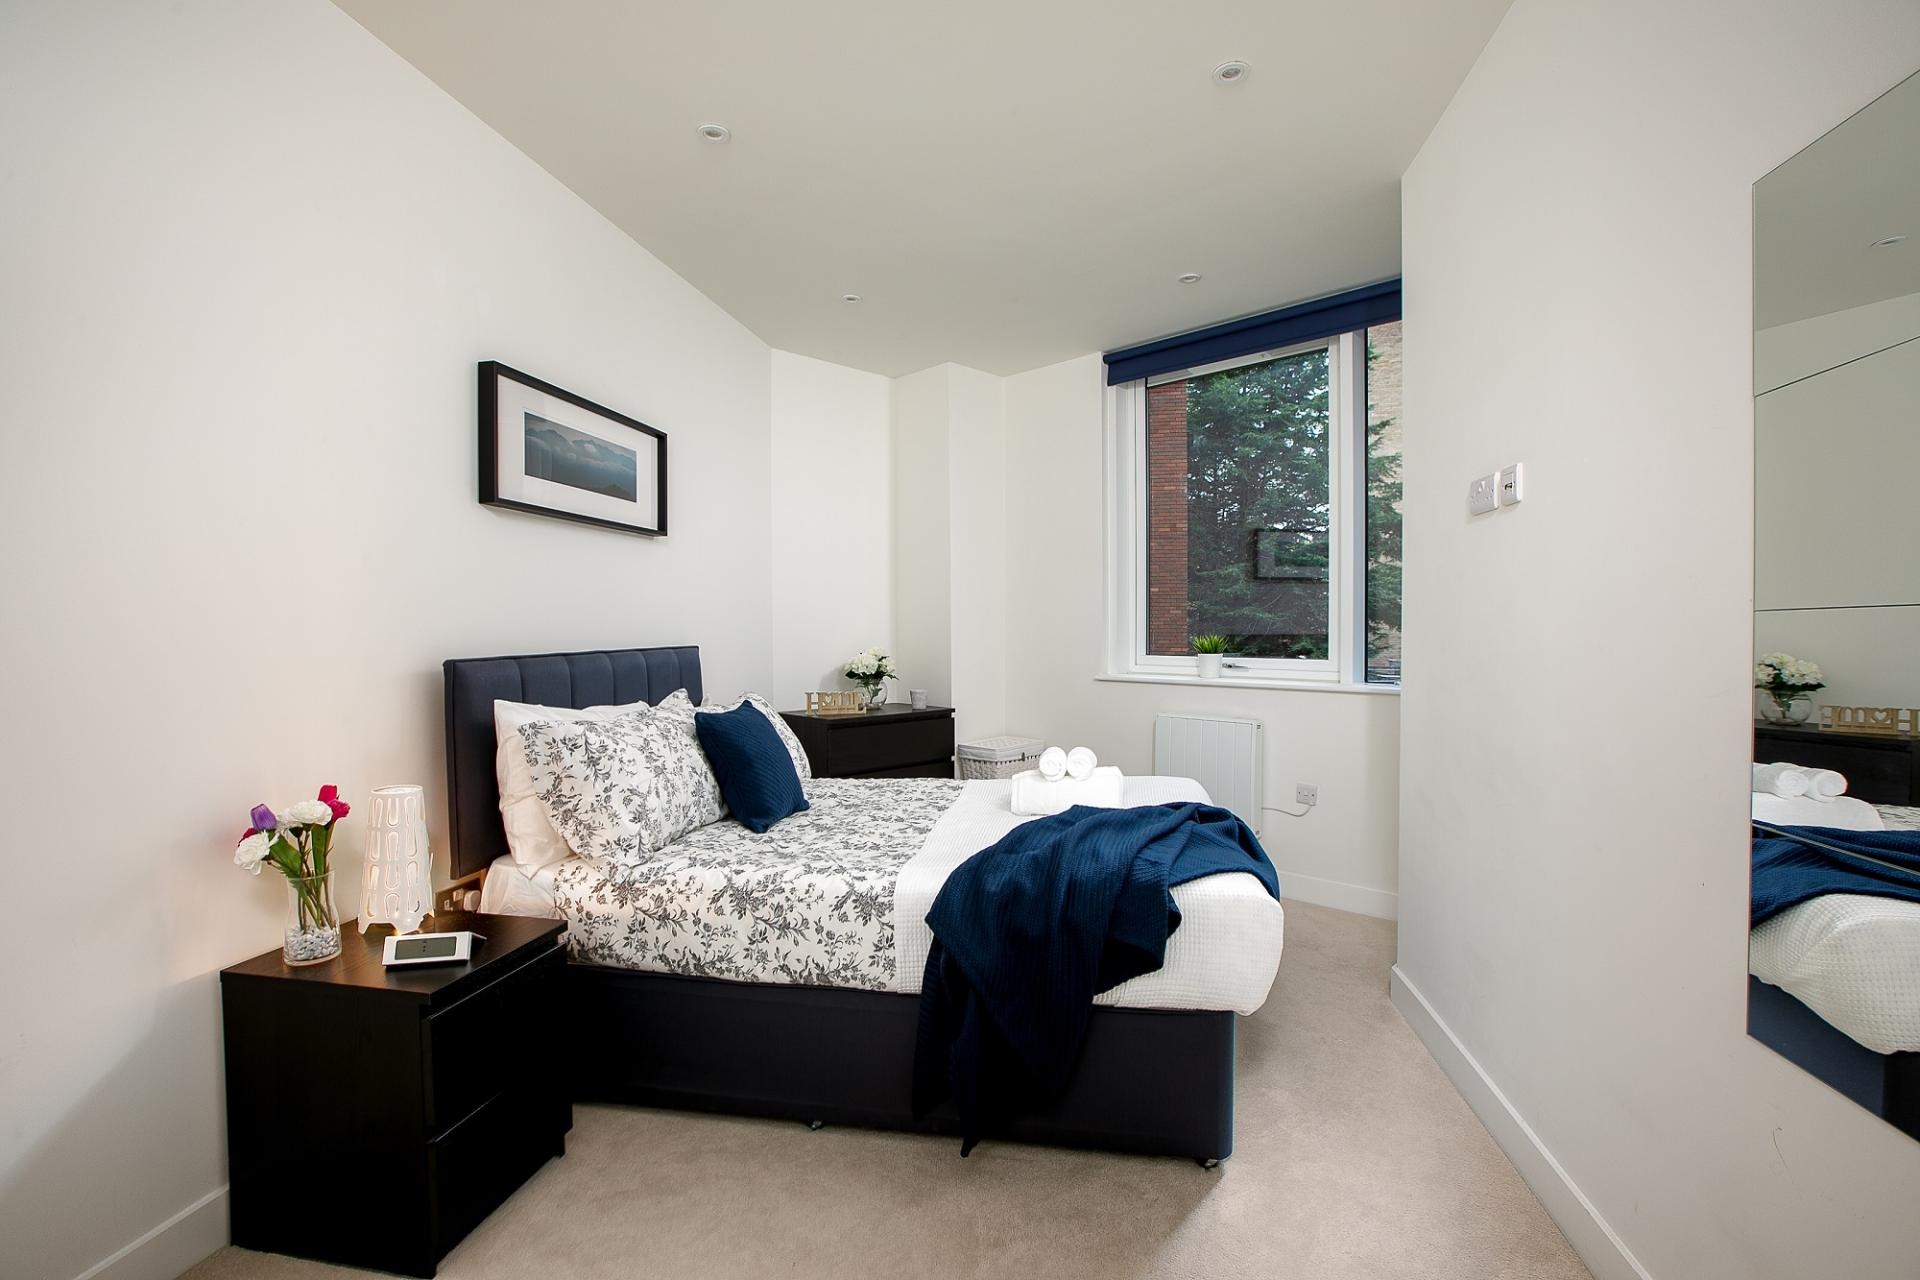 Bedroom at Kings Reach Apartment, Centre, Reading - Citybase Apartments